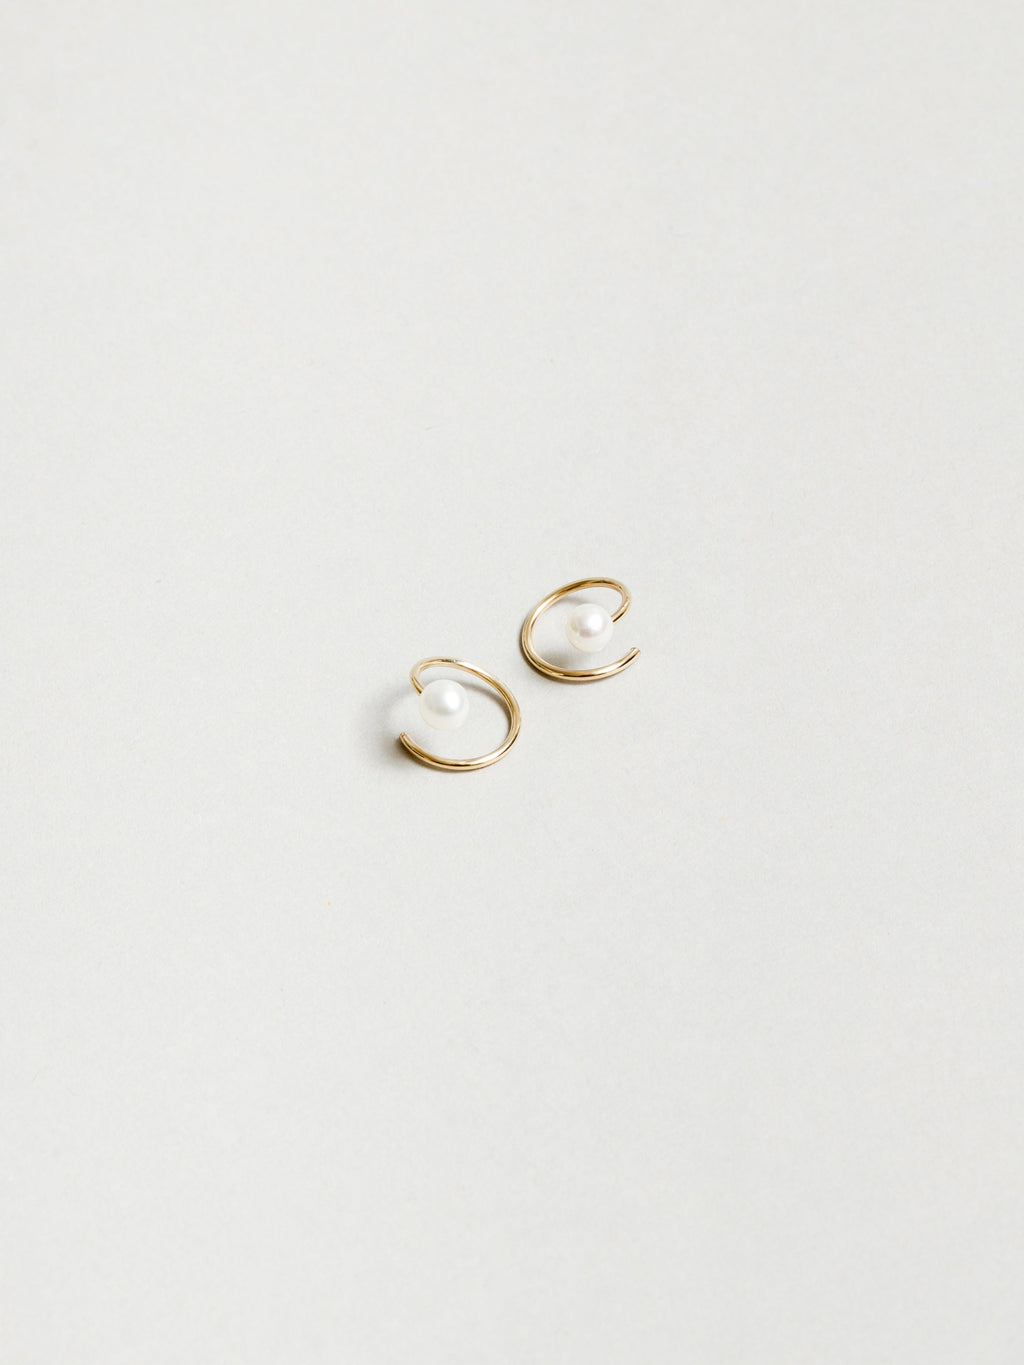 White Pearl Swirl Earrings in Gold